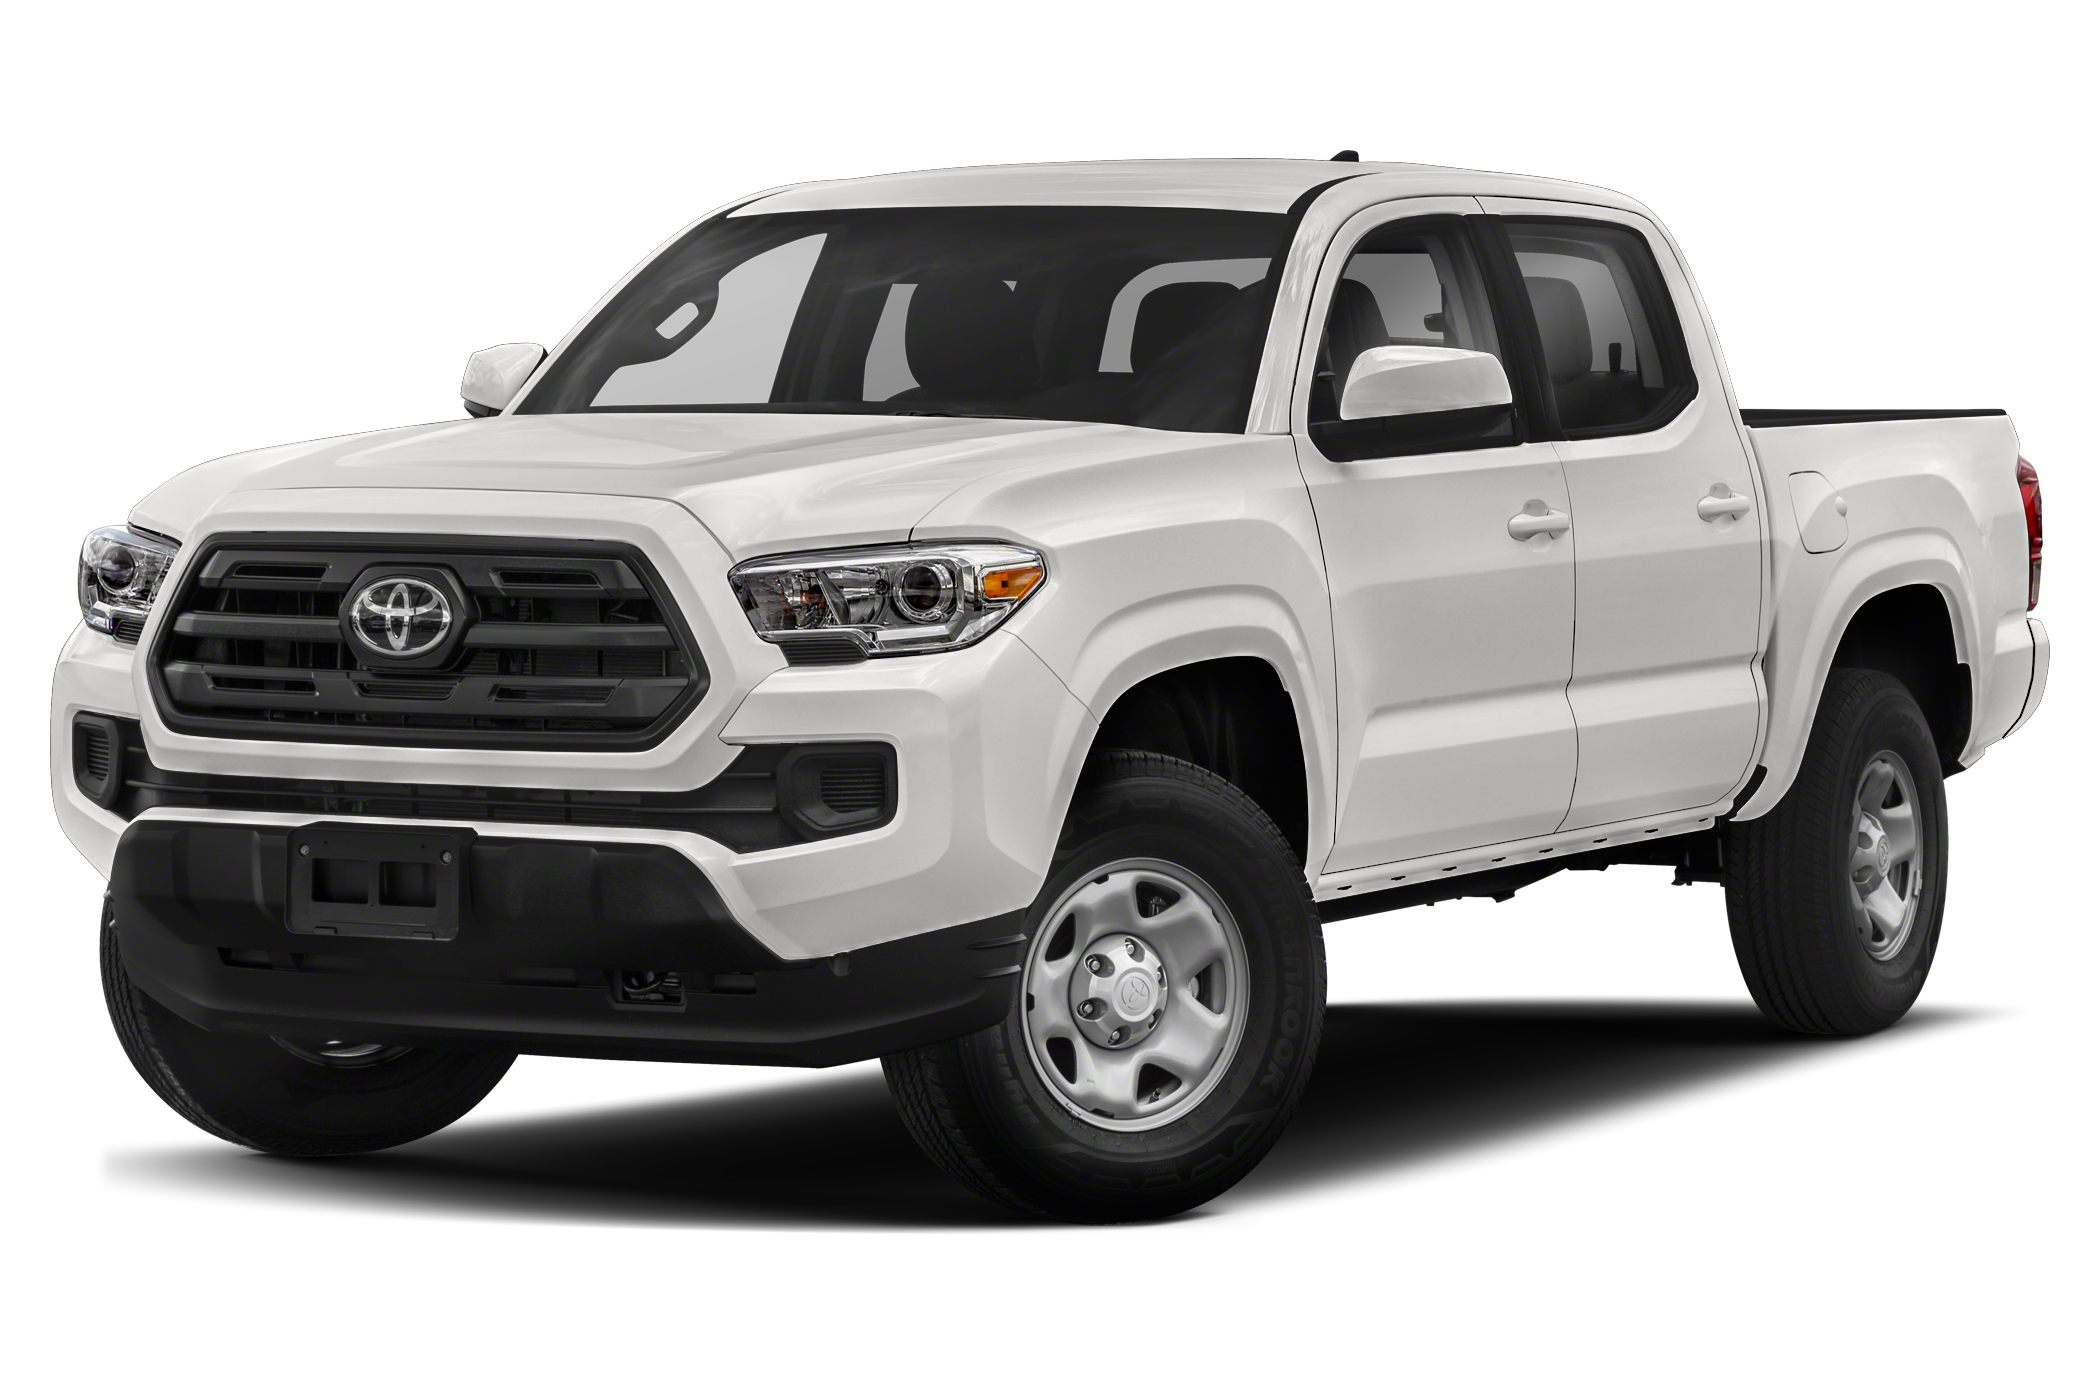 2019 Toyota Tacoma SR5 V6 4x4 Double Cab 140.6 in. WB